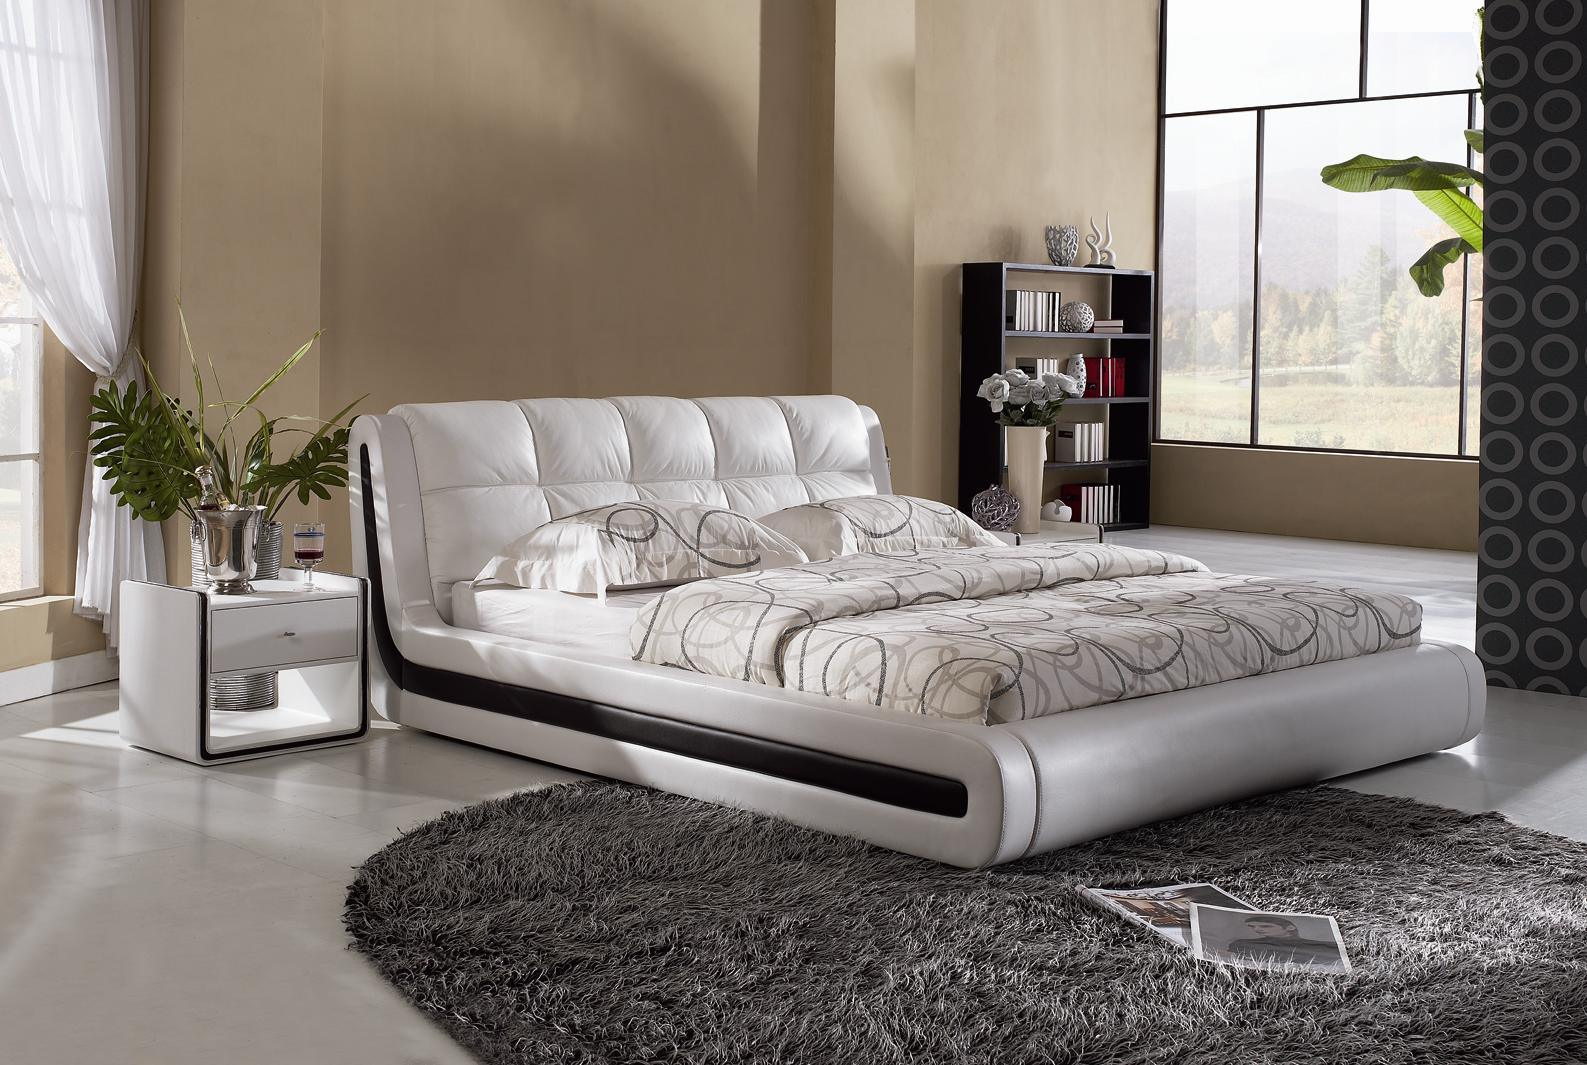 Modern beds design pictures simple home decoration tips for New modern bed design